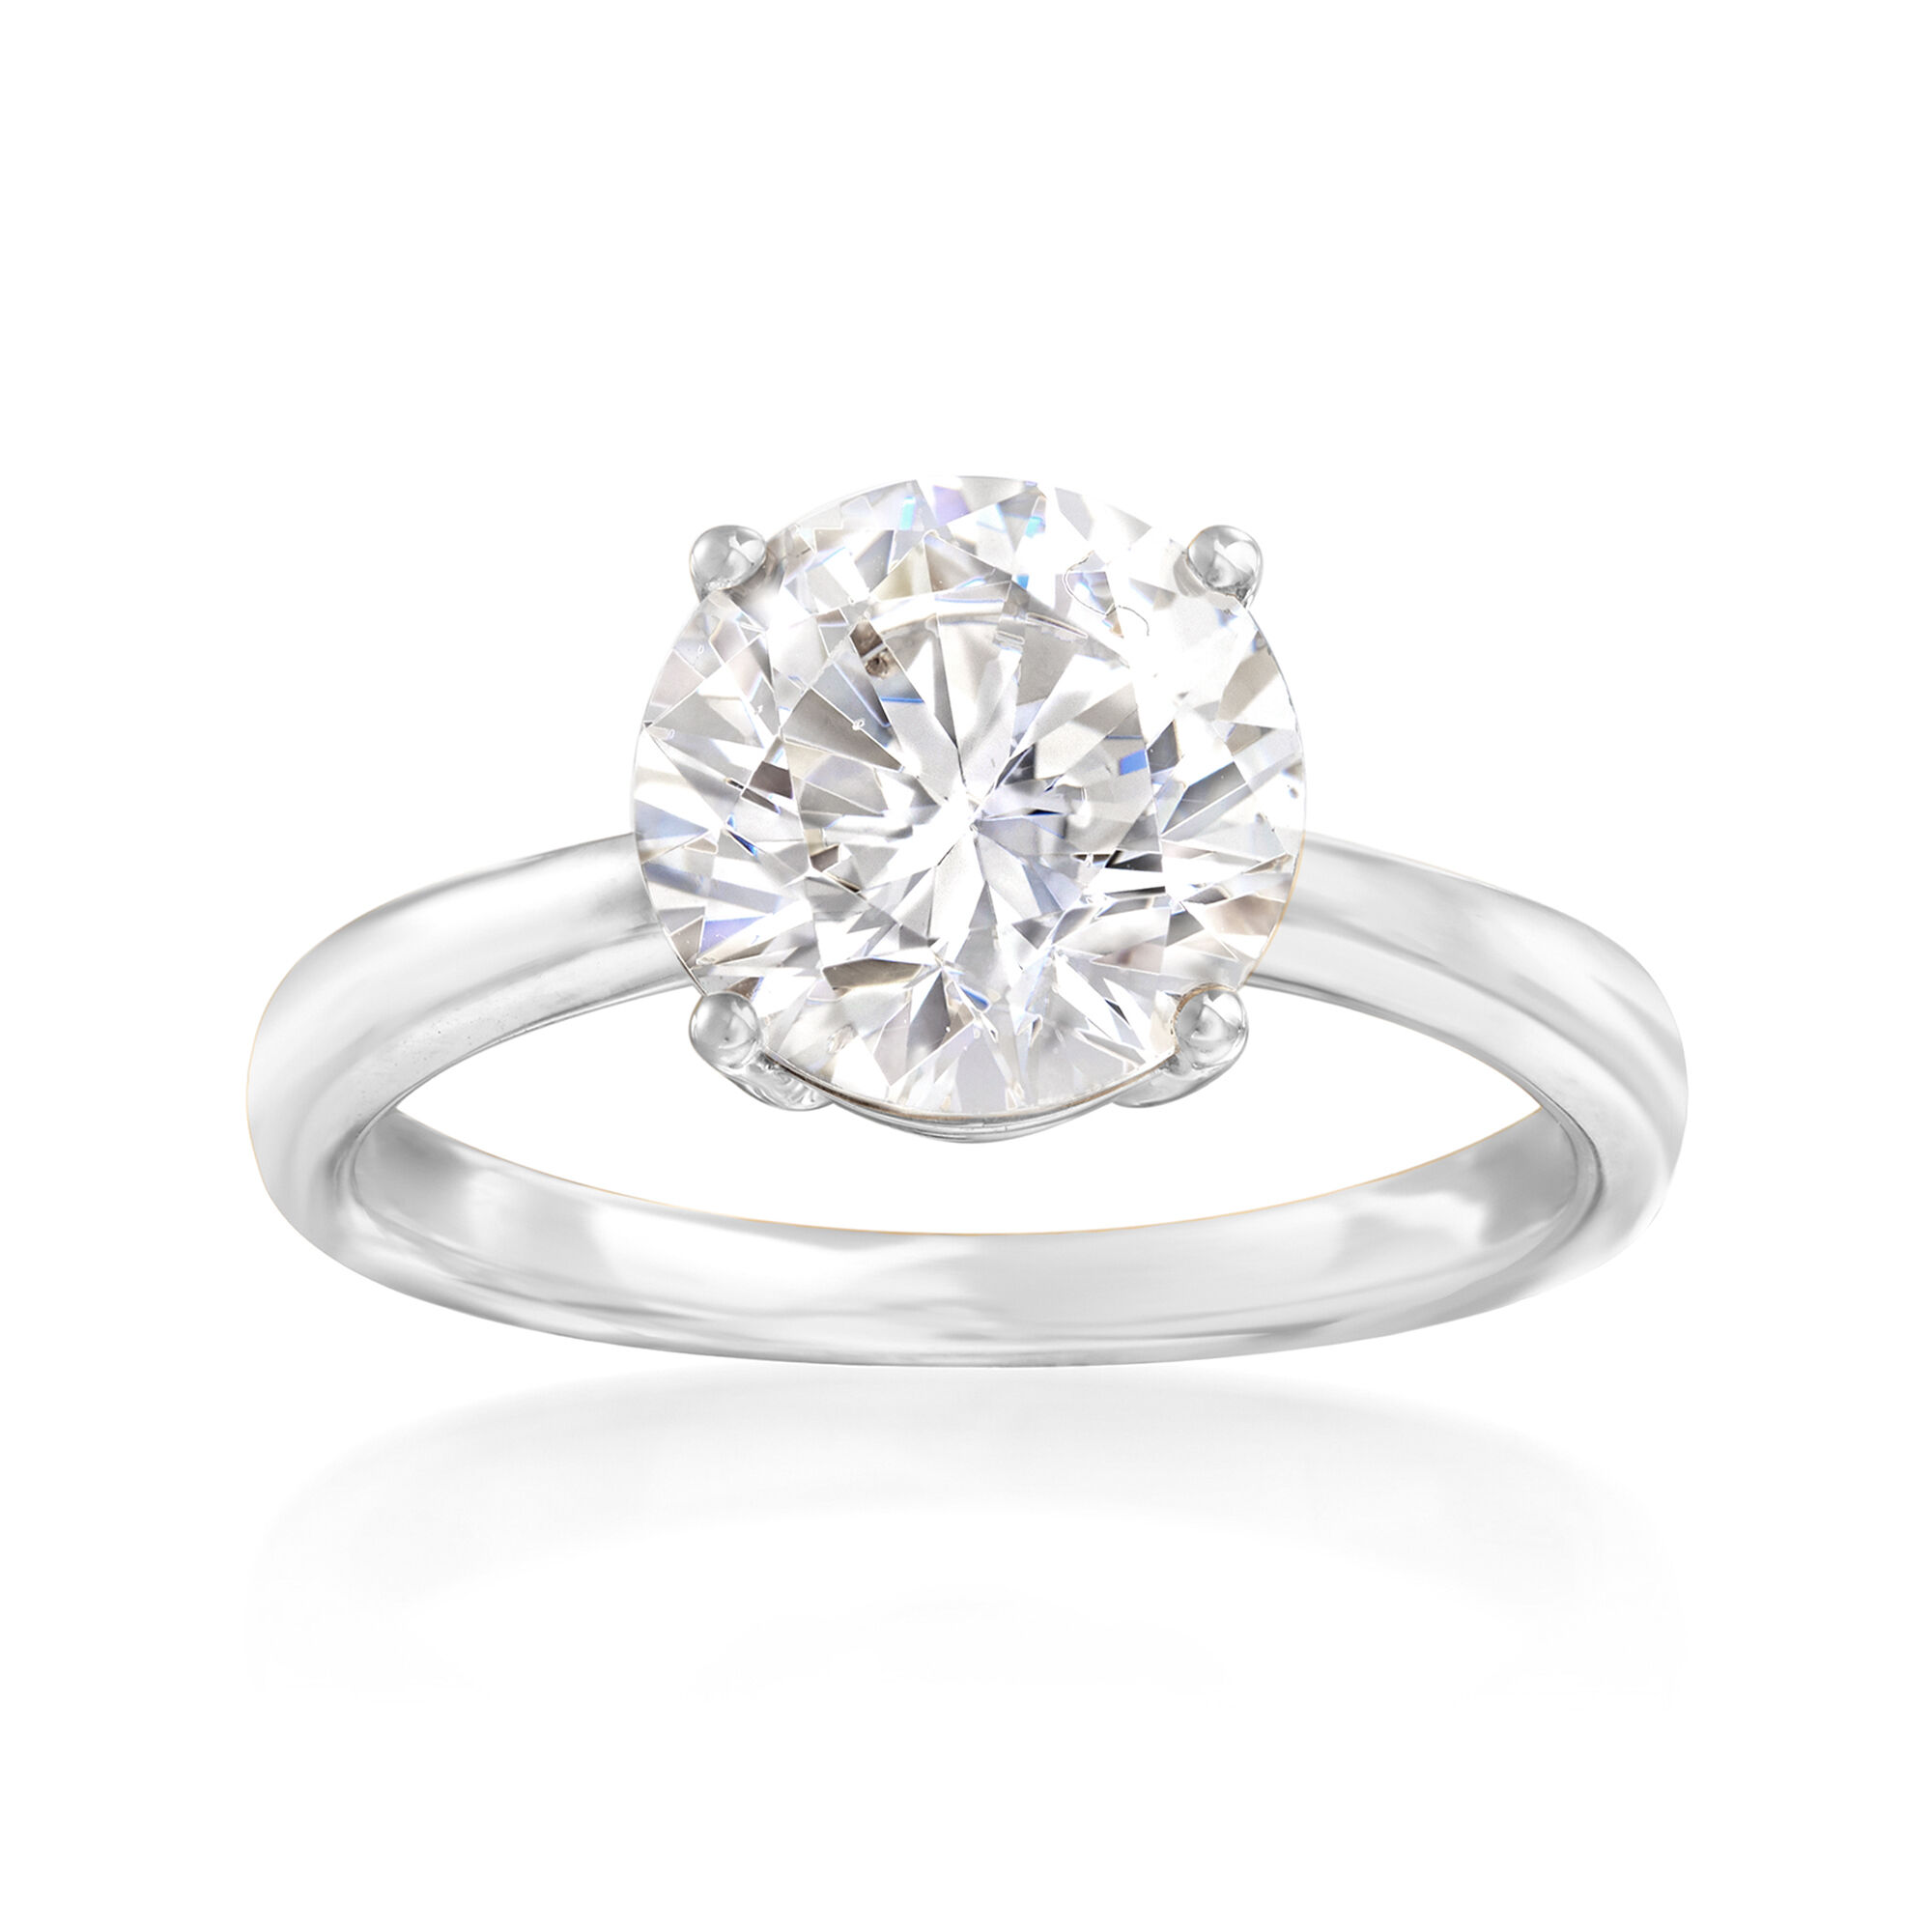 Well-Educated 14ct White Gold Round Cut Cz Ring Other Fine Rings